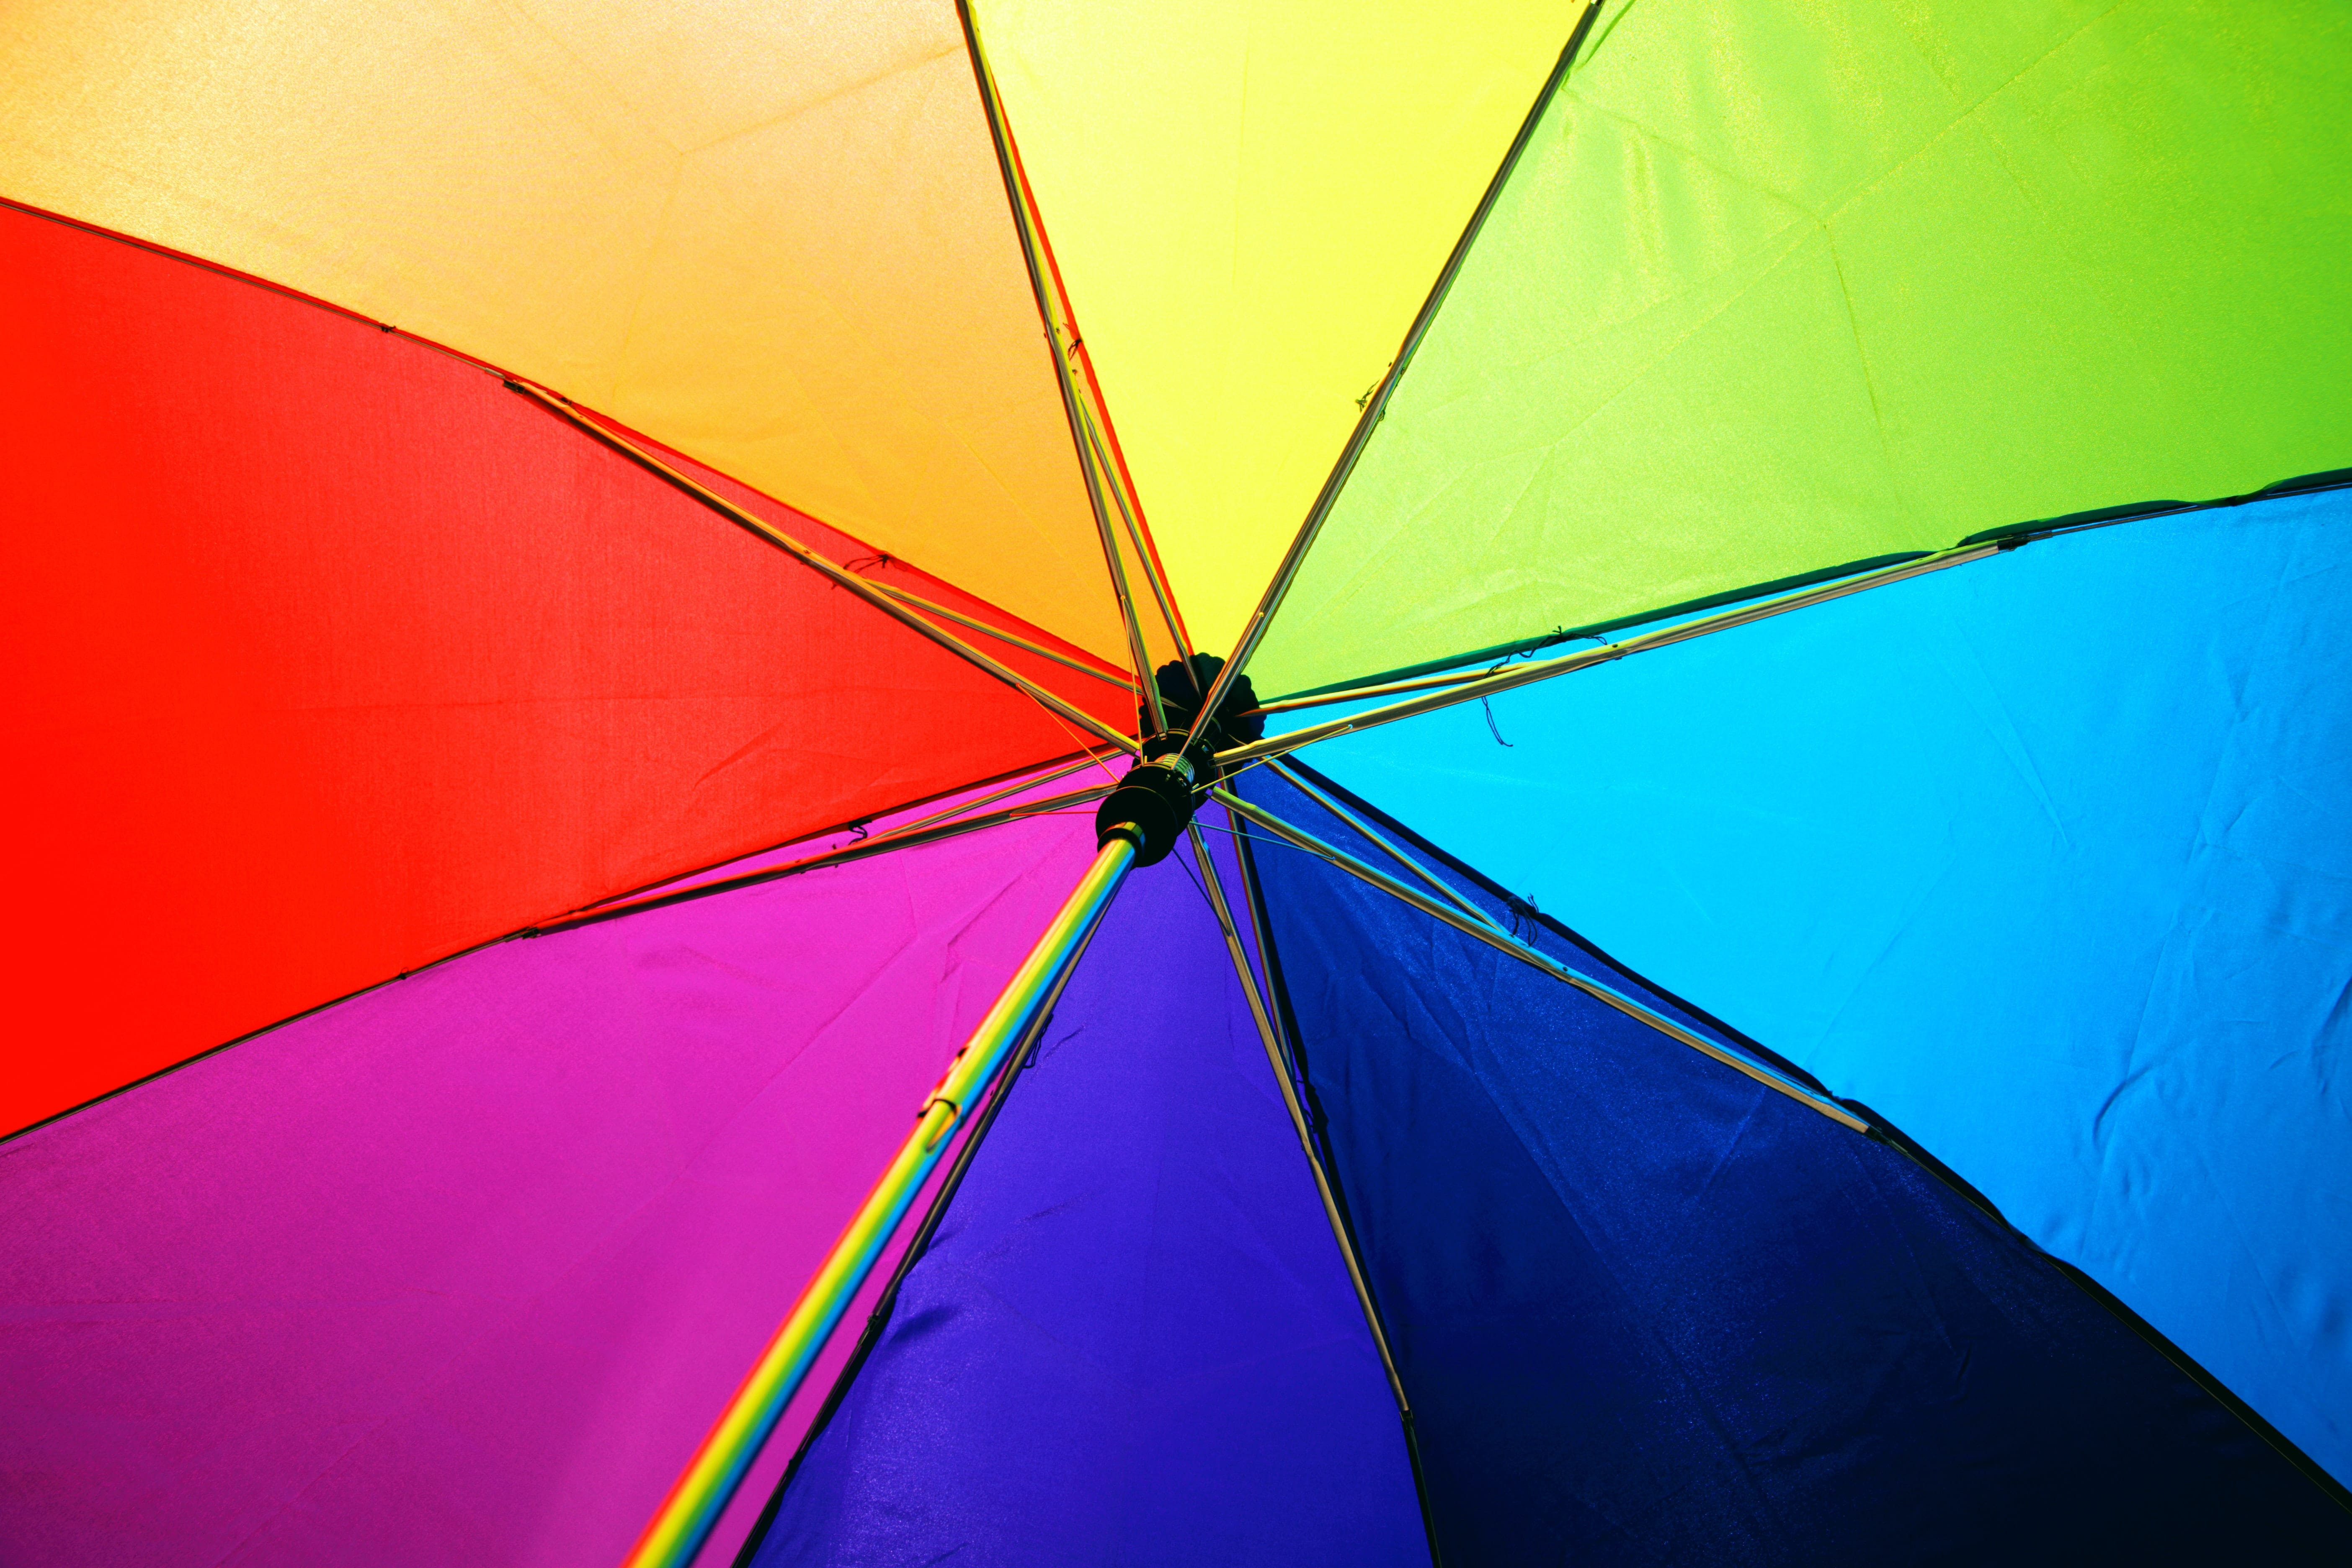 LGBTQI rainbow umbrella